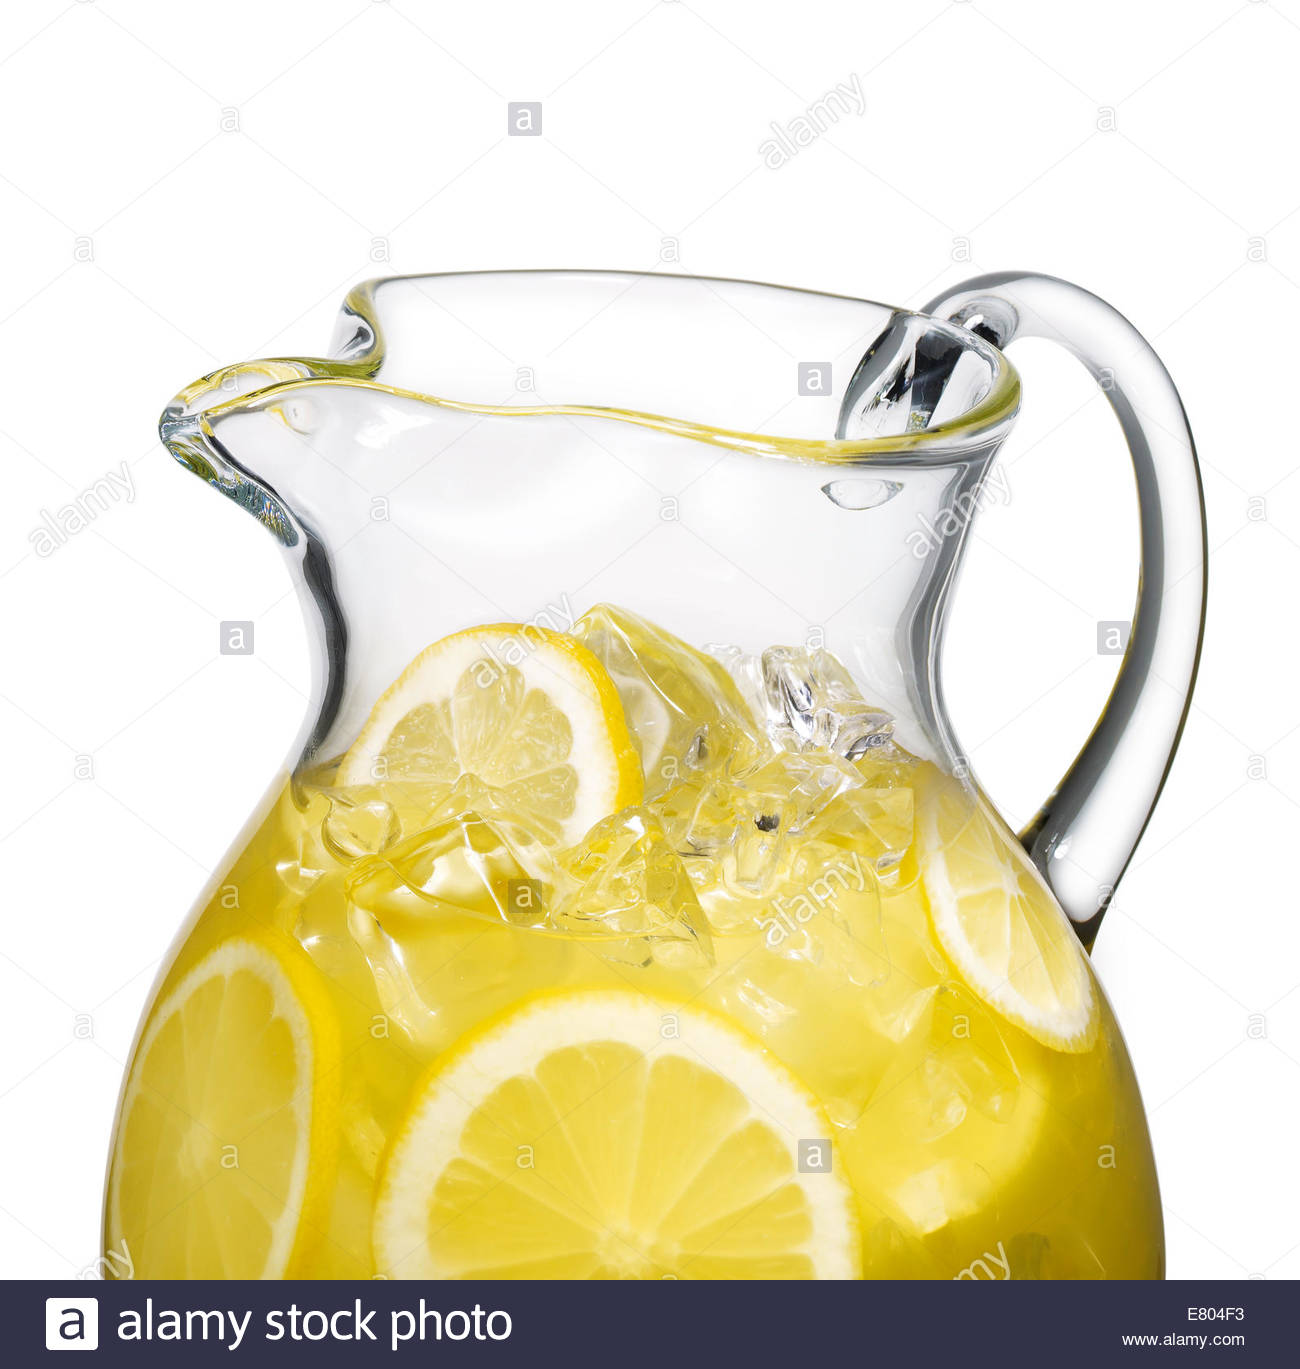 Lemonade pitcher with lemon slices and ice cubes isolated on white - Stock Image